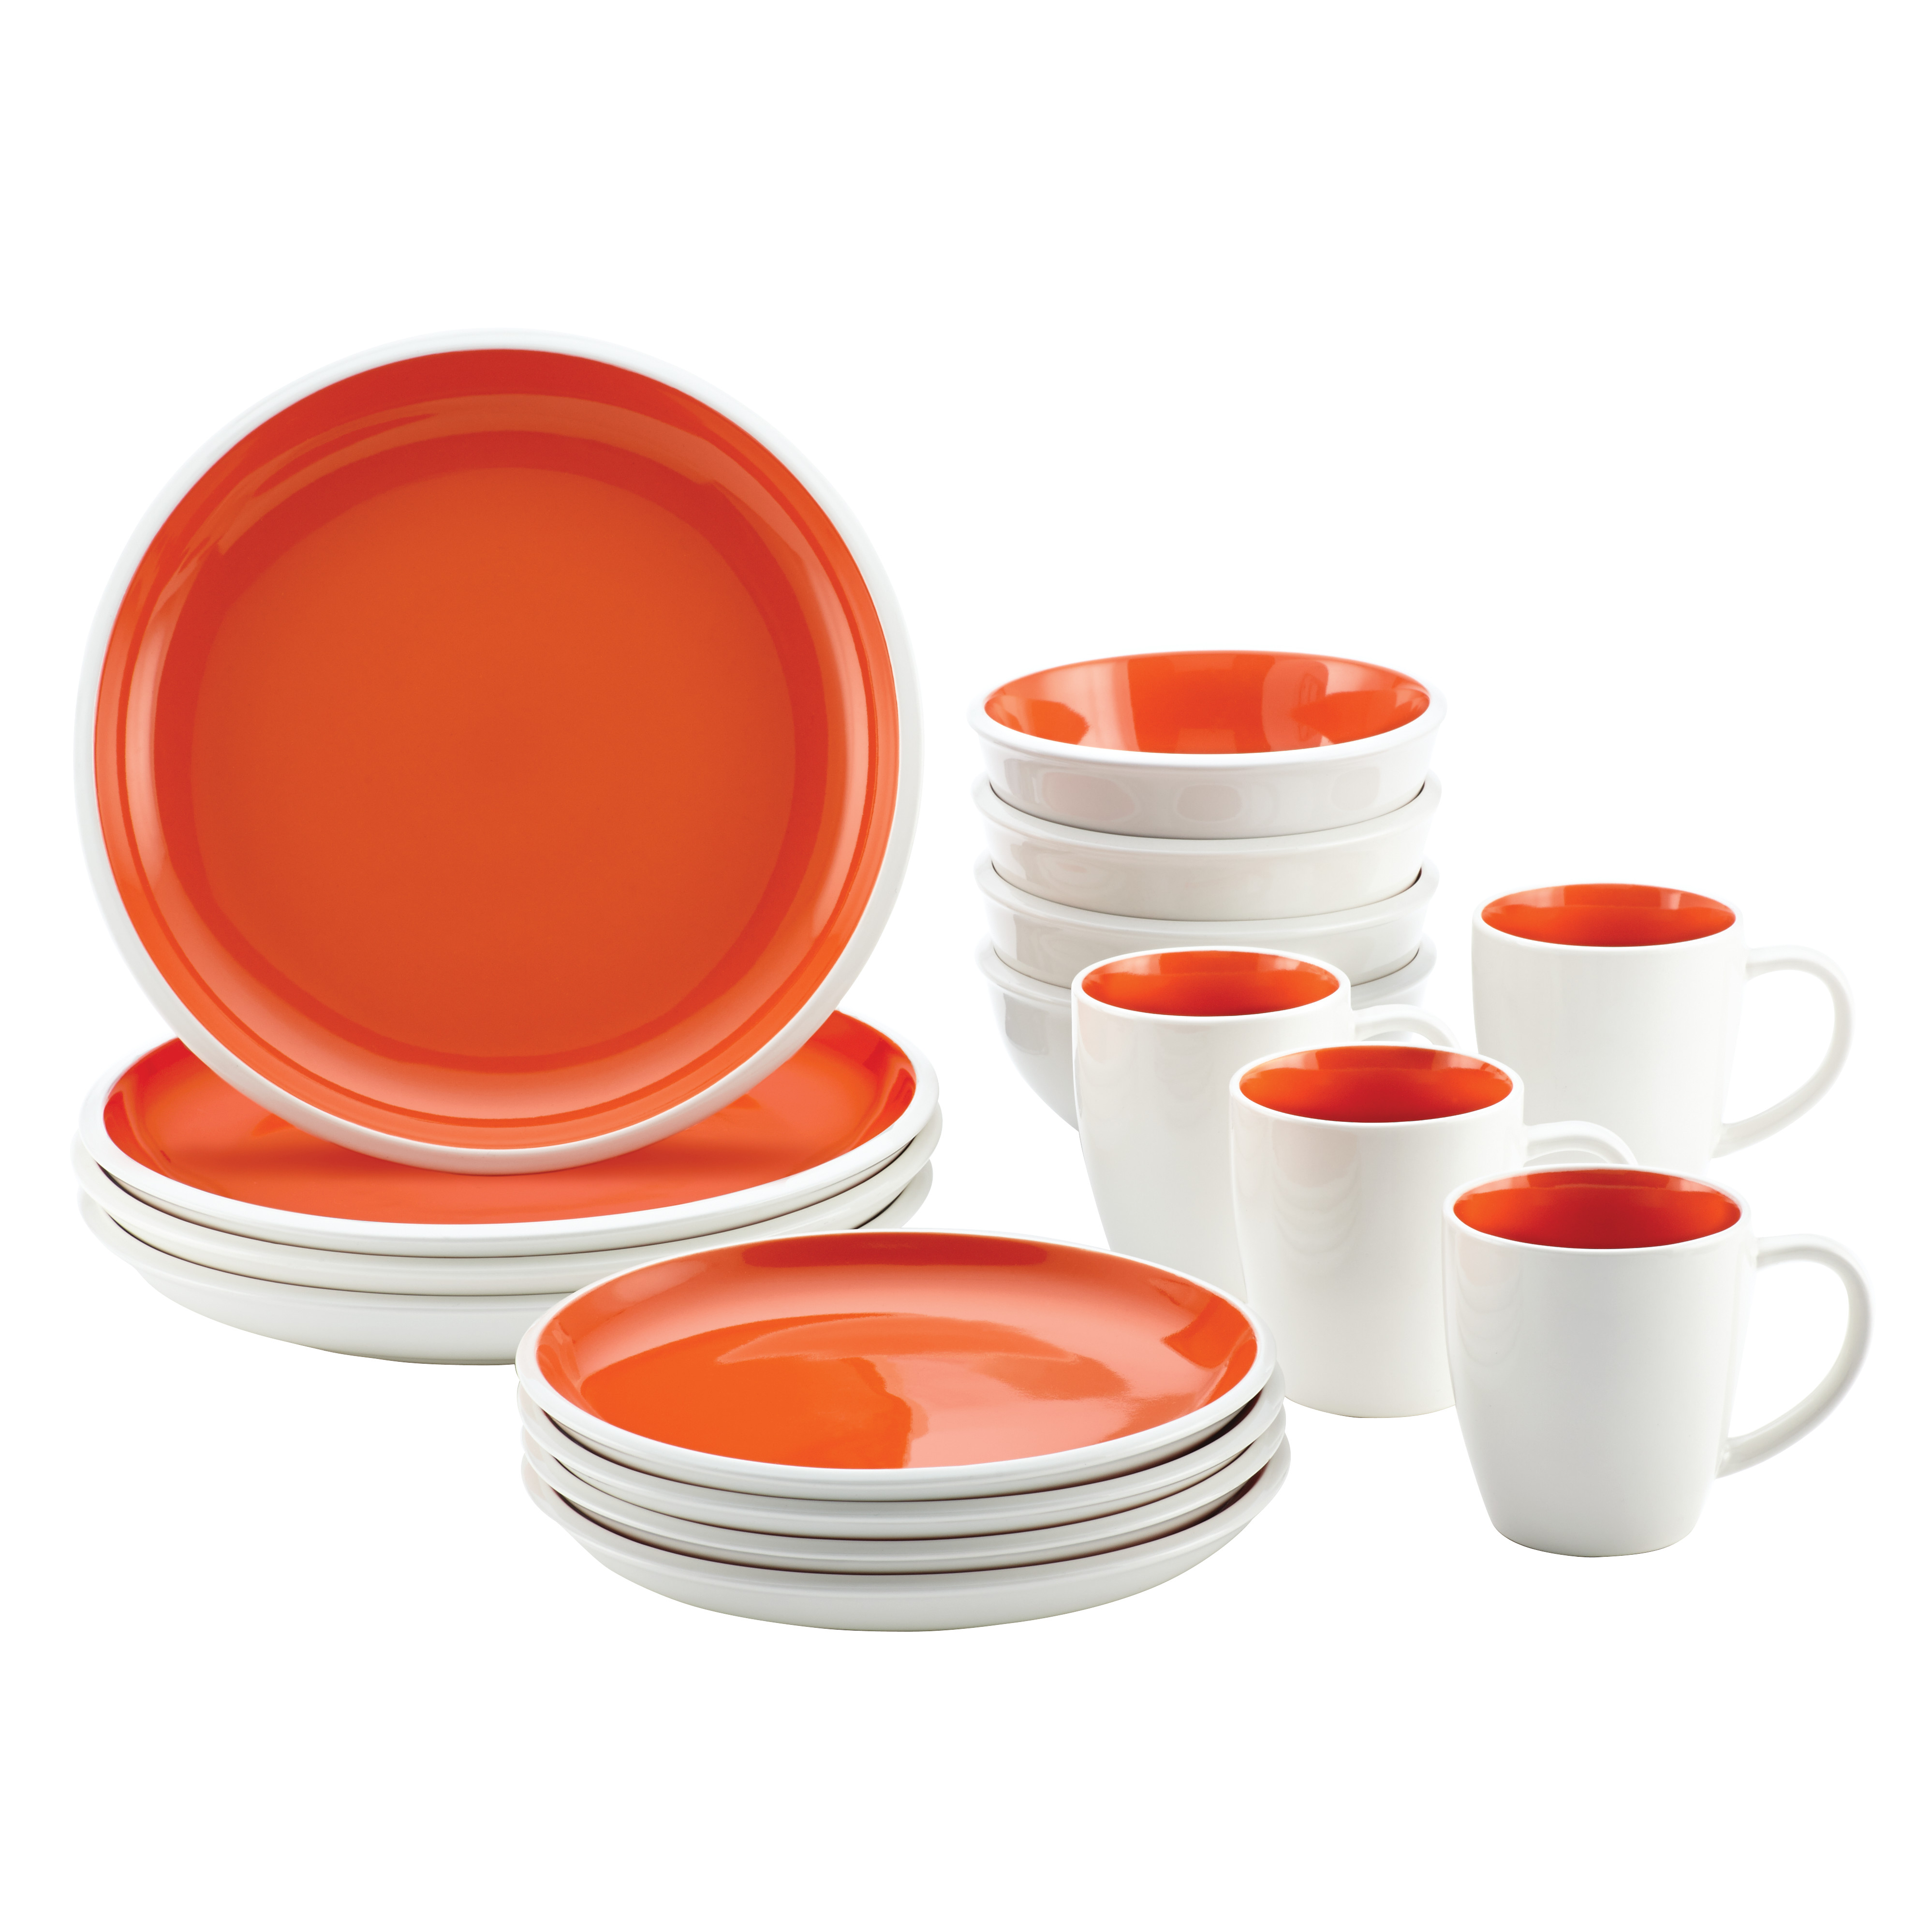 Rachael Ray Rise Stoneware 16-Piece Dinnerware Set, Orange